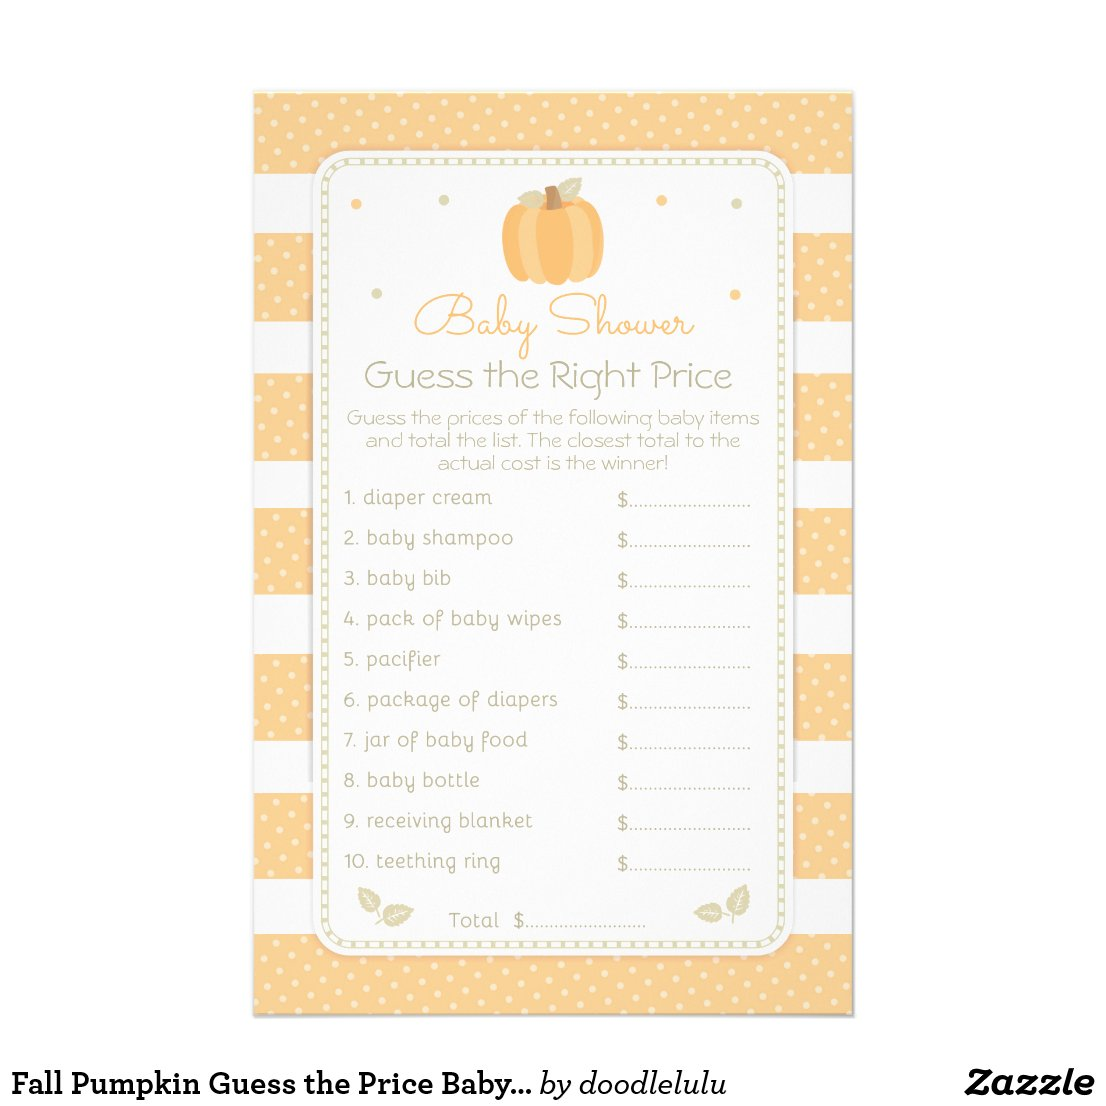 Fall Pumpkin Guess the Price Baby Shower Game Flyer